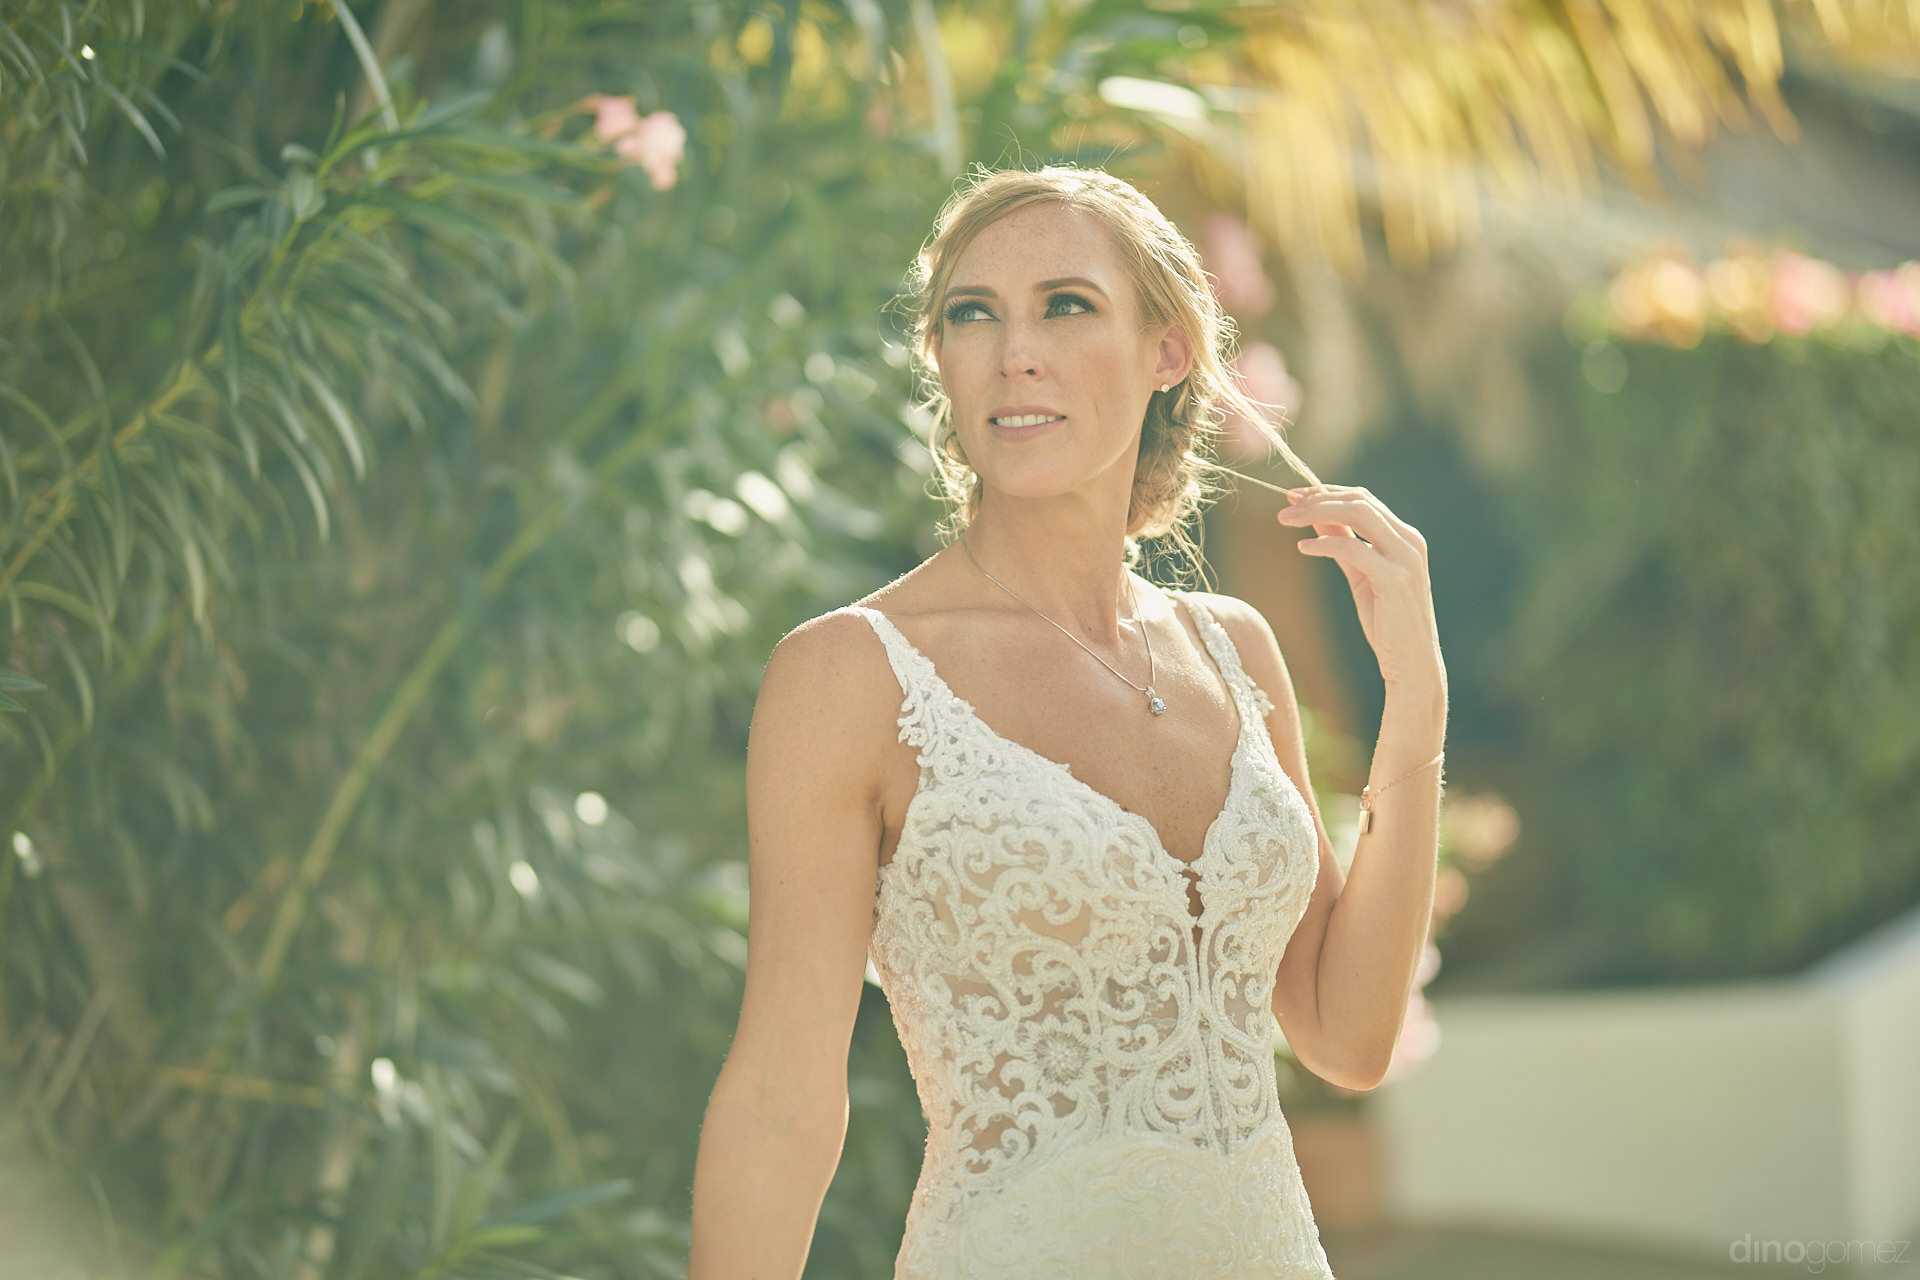 Los Cabos Wedding Photographer Captured This Bride Unaware Of What Was Happening - Mm